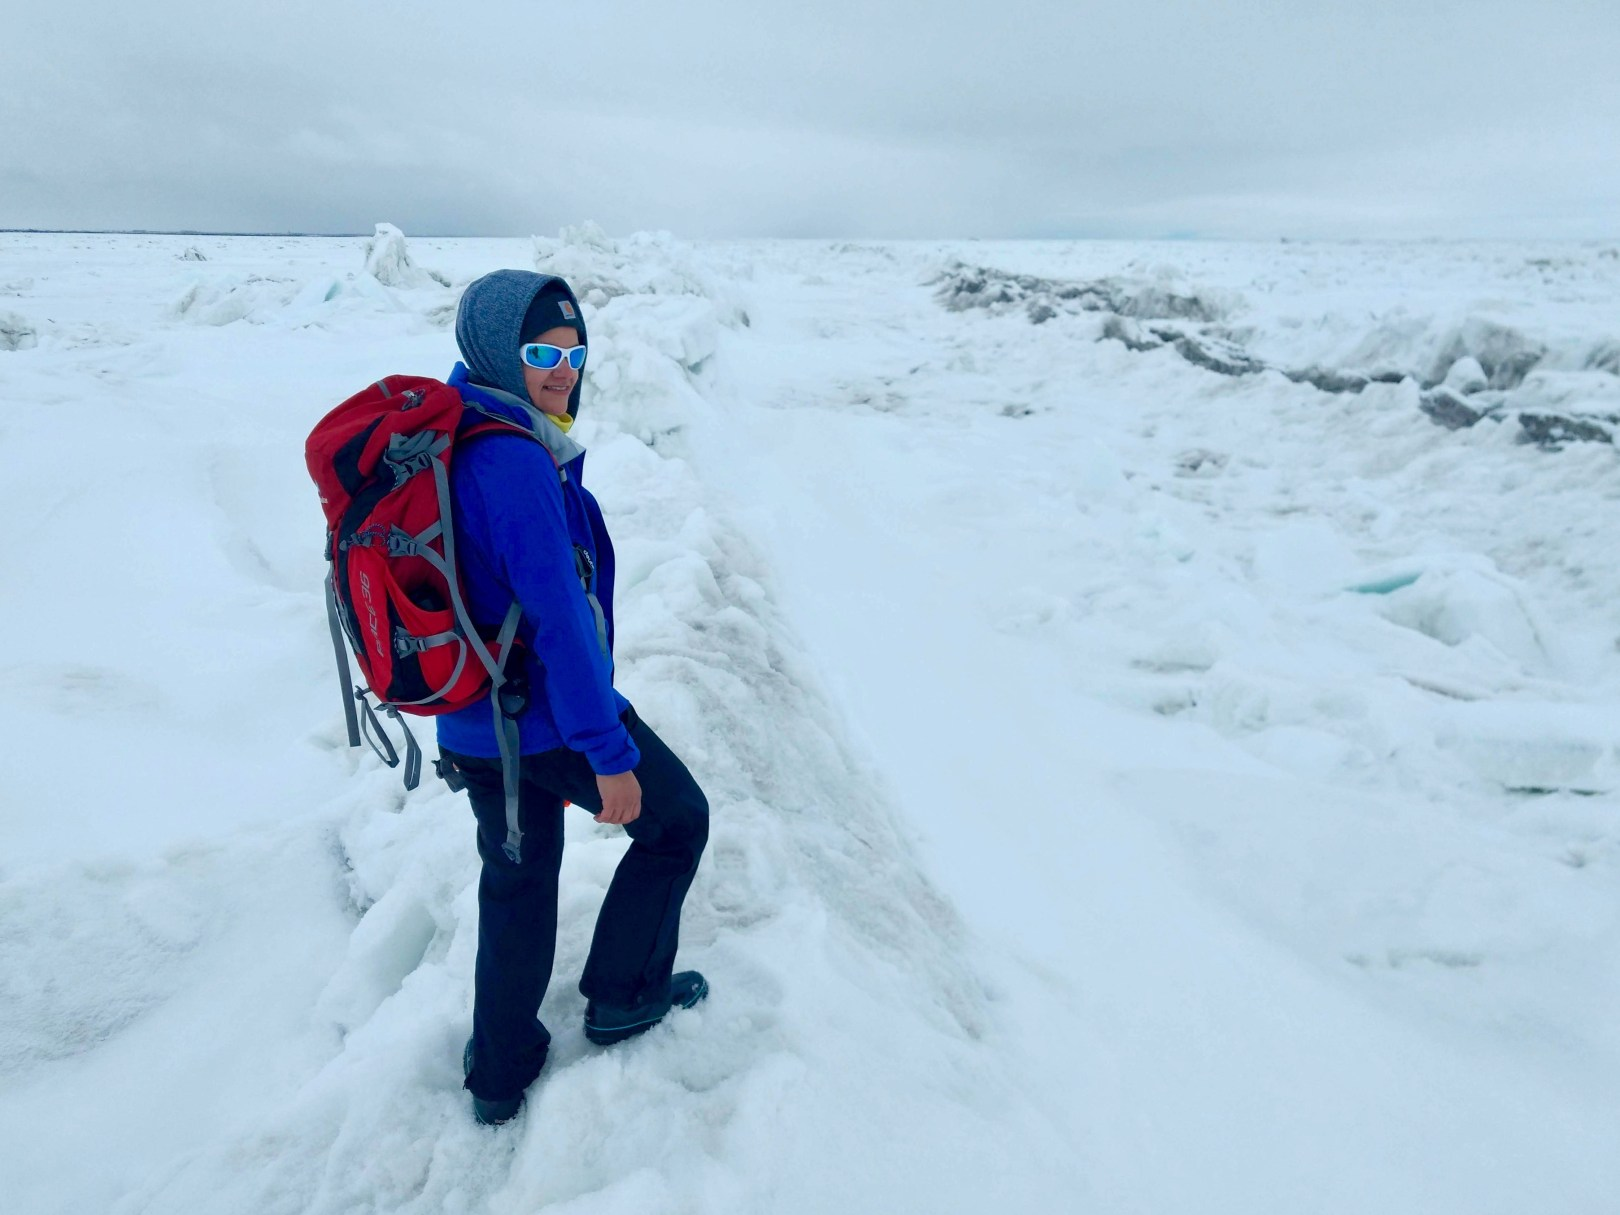 Dina Abdel-Fattah standing on sea ice pressure ridge. She is bundled up in snow/ice gear, is wearing a big red backpack, and is stepping on snow. There is white snow/ice as far as the eye can see.